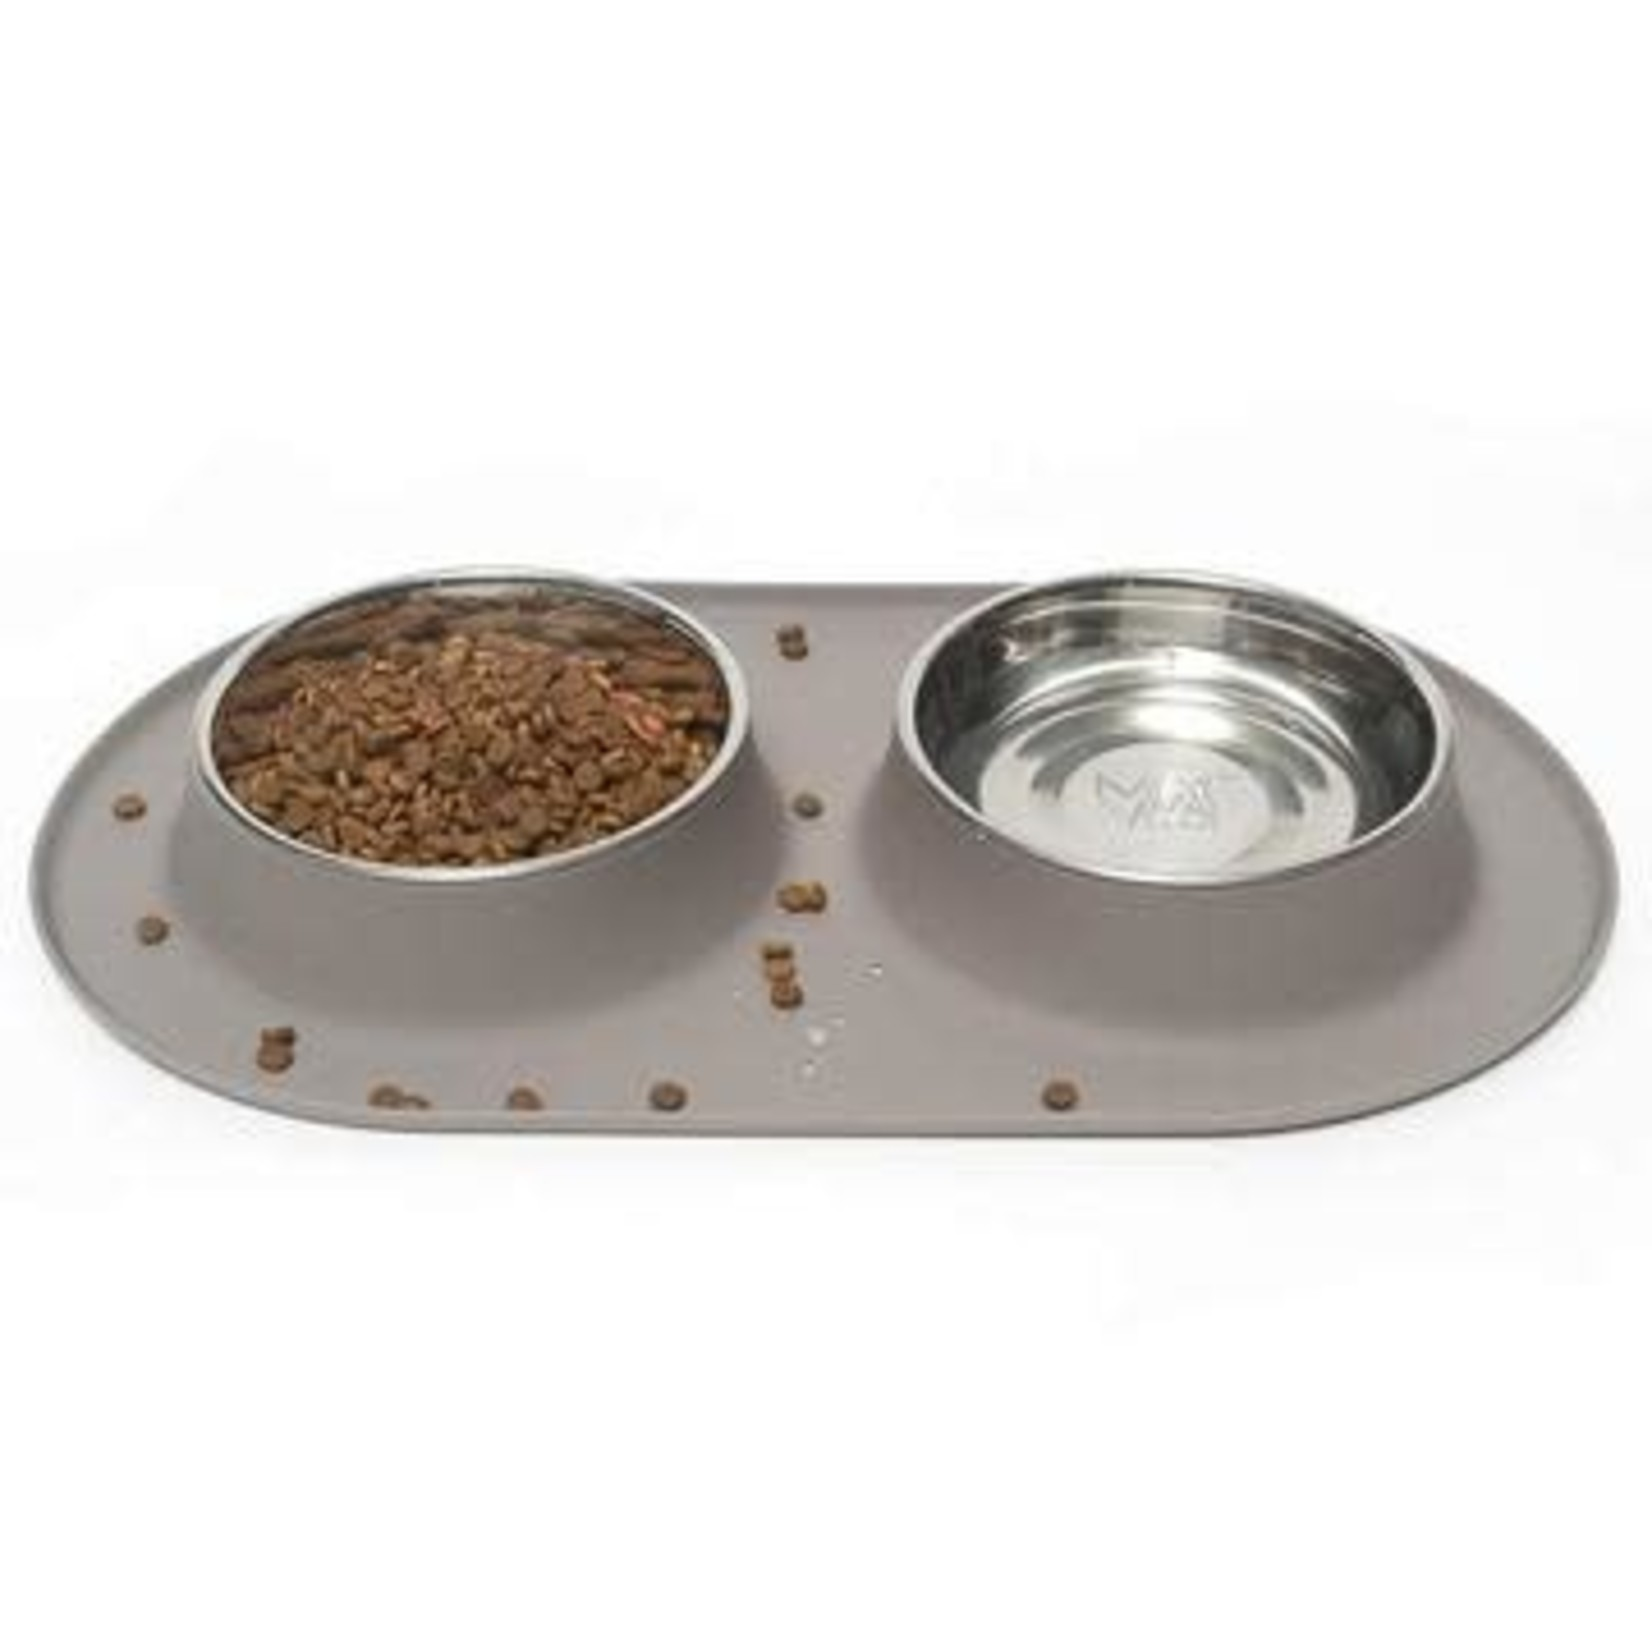 Messy Mutts Messy Mutts Dog Double Silicone Feeder Grey 6 CUP